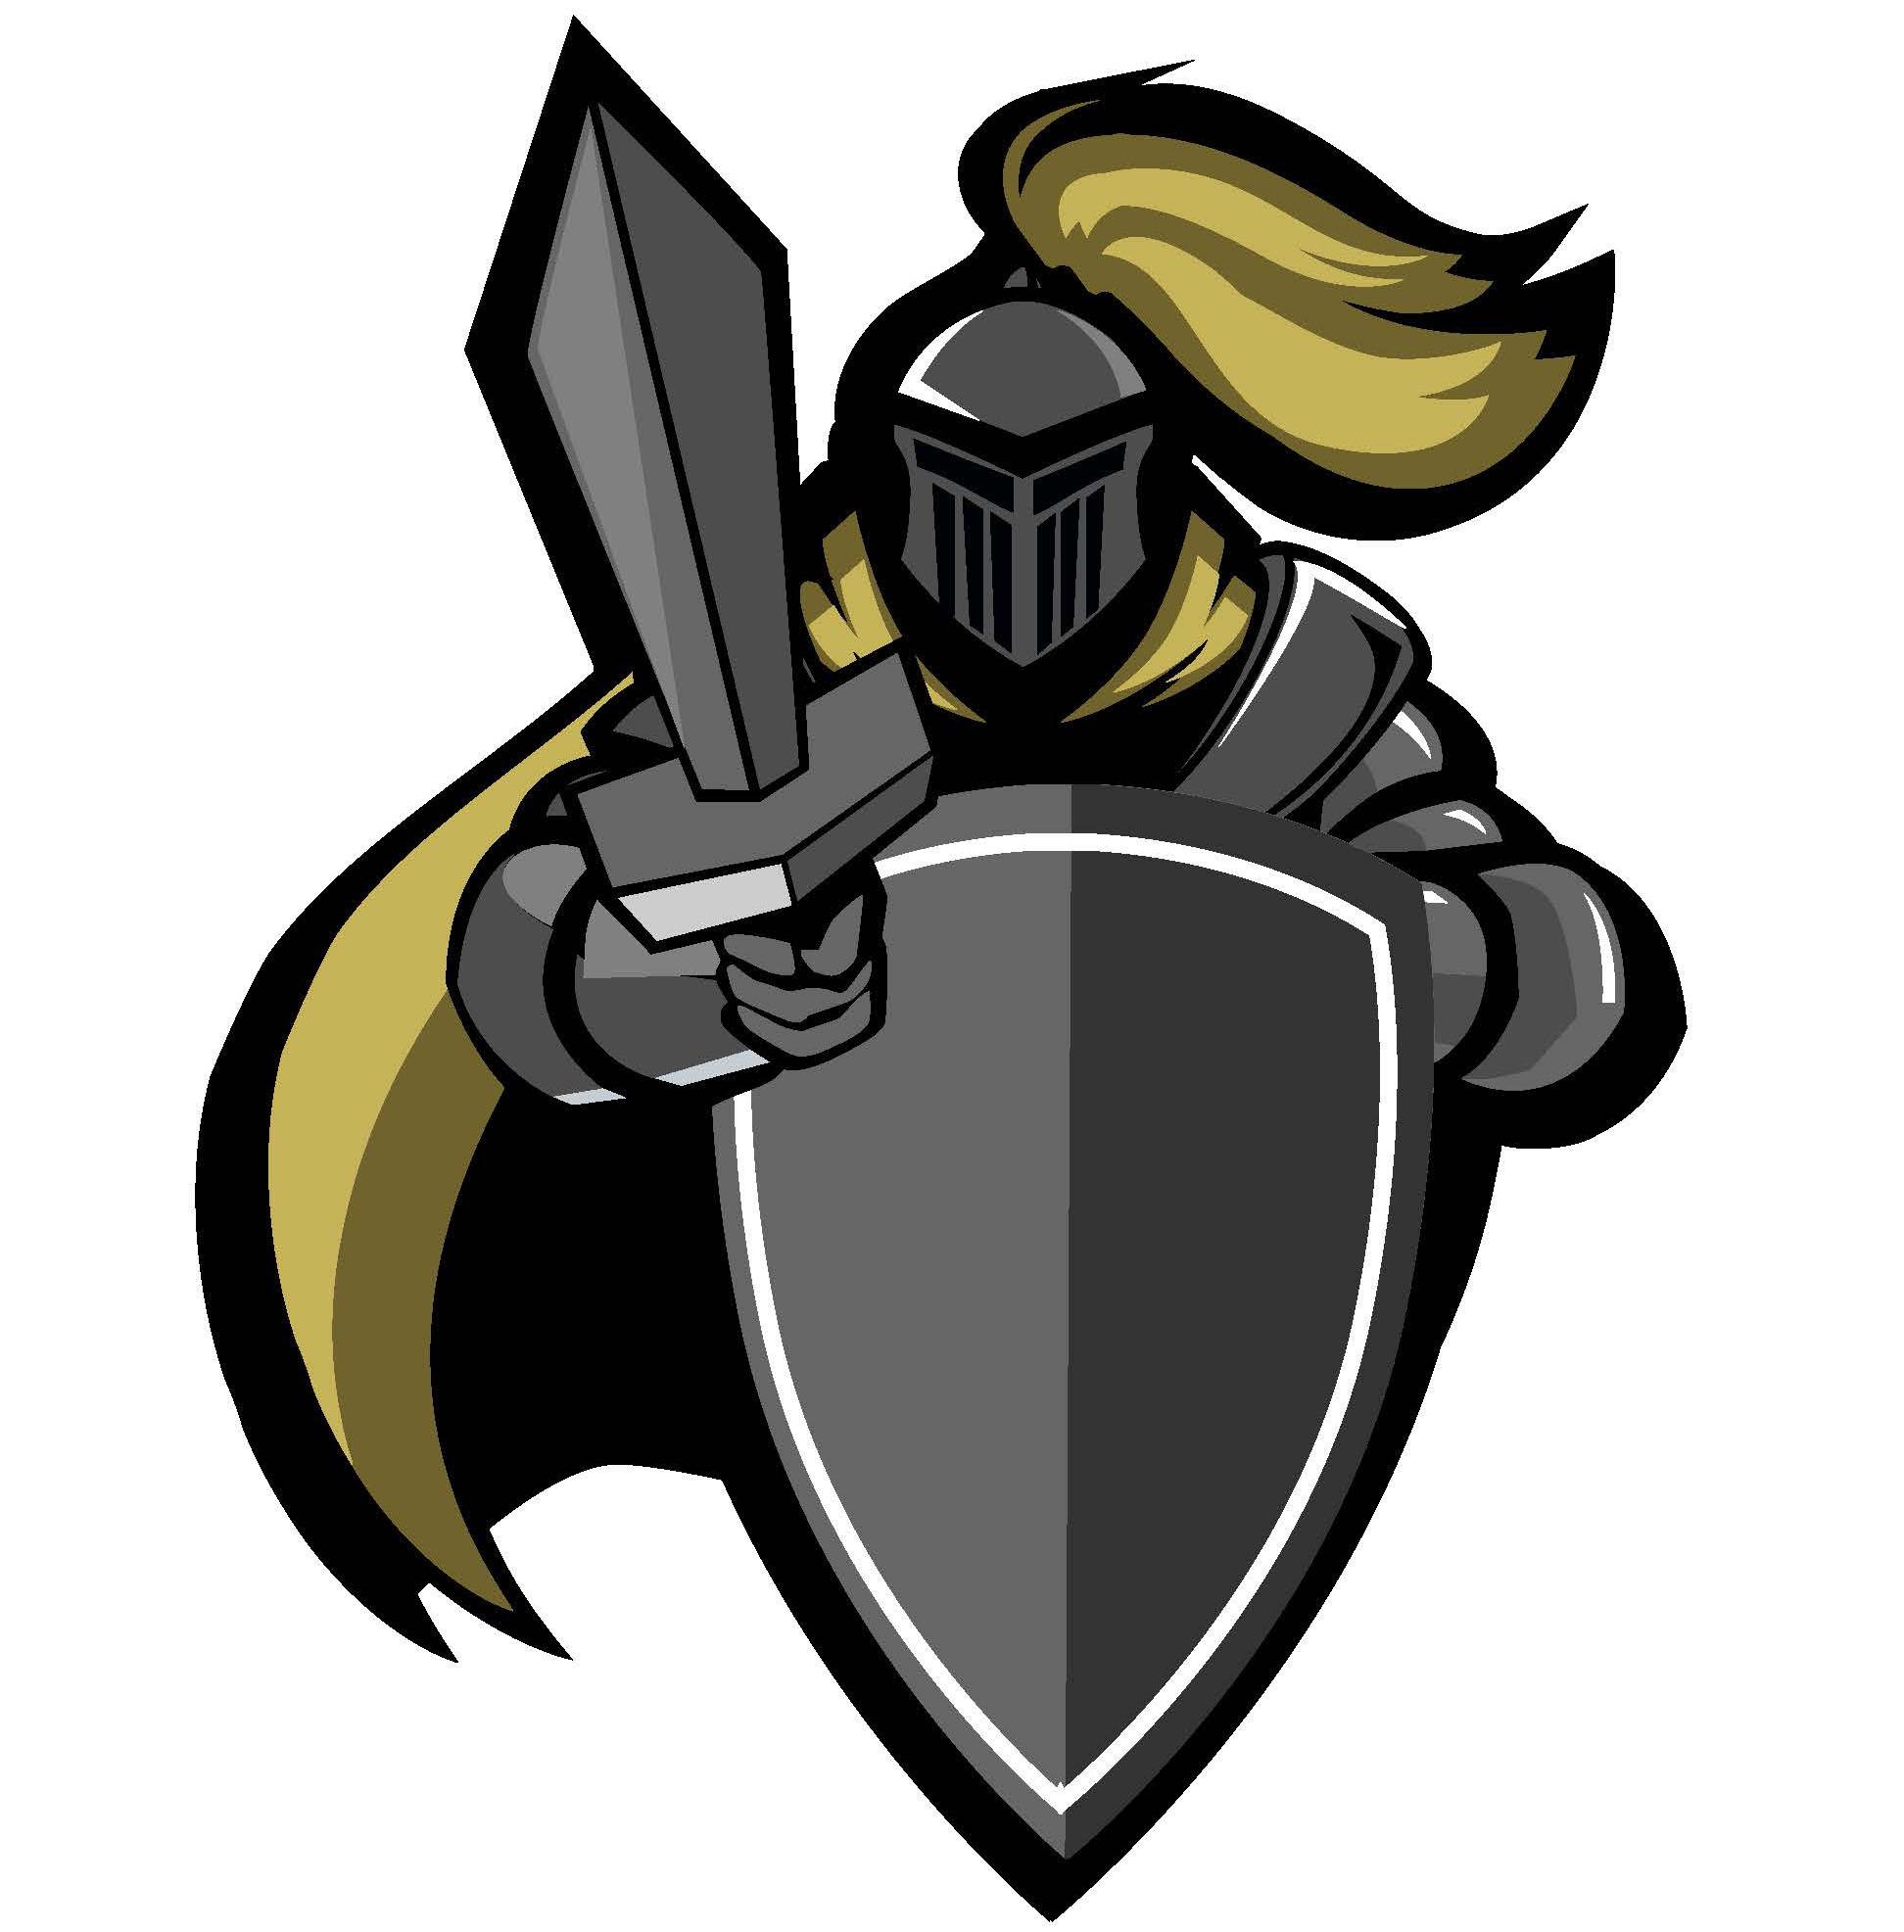 District welcomes new teachers. Knight clipart silver knight